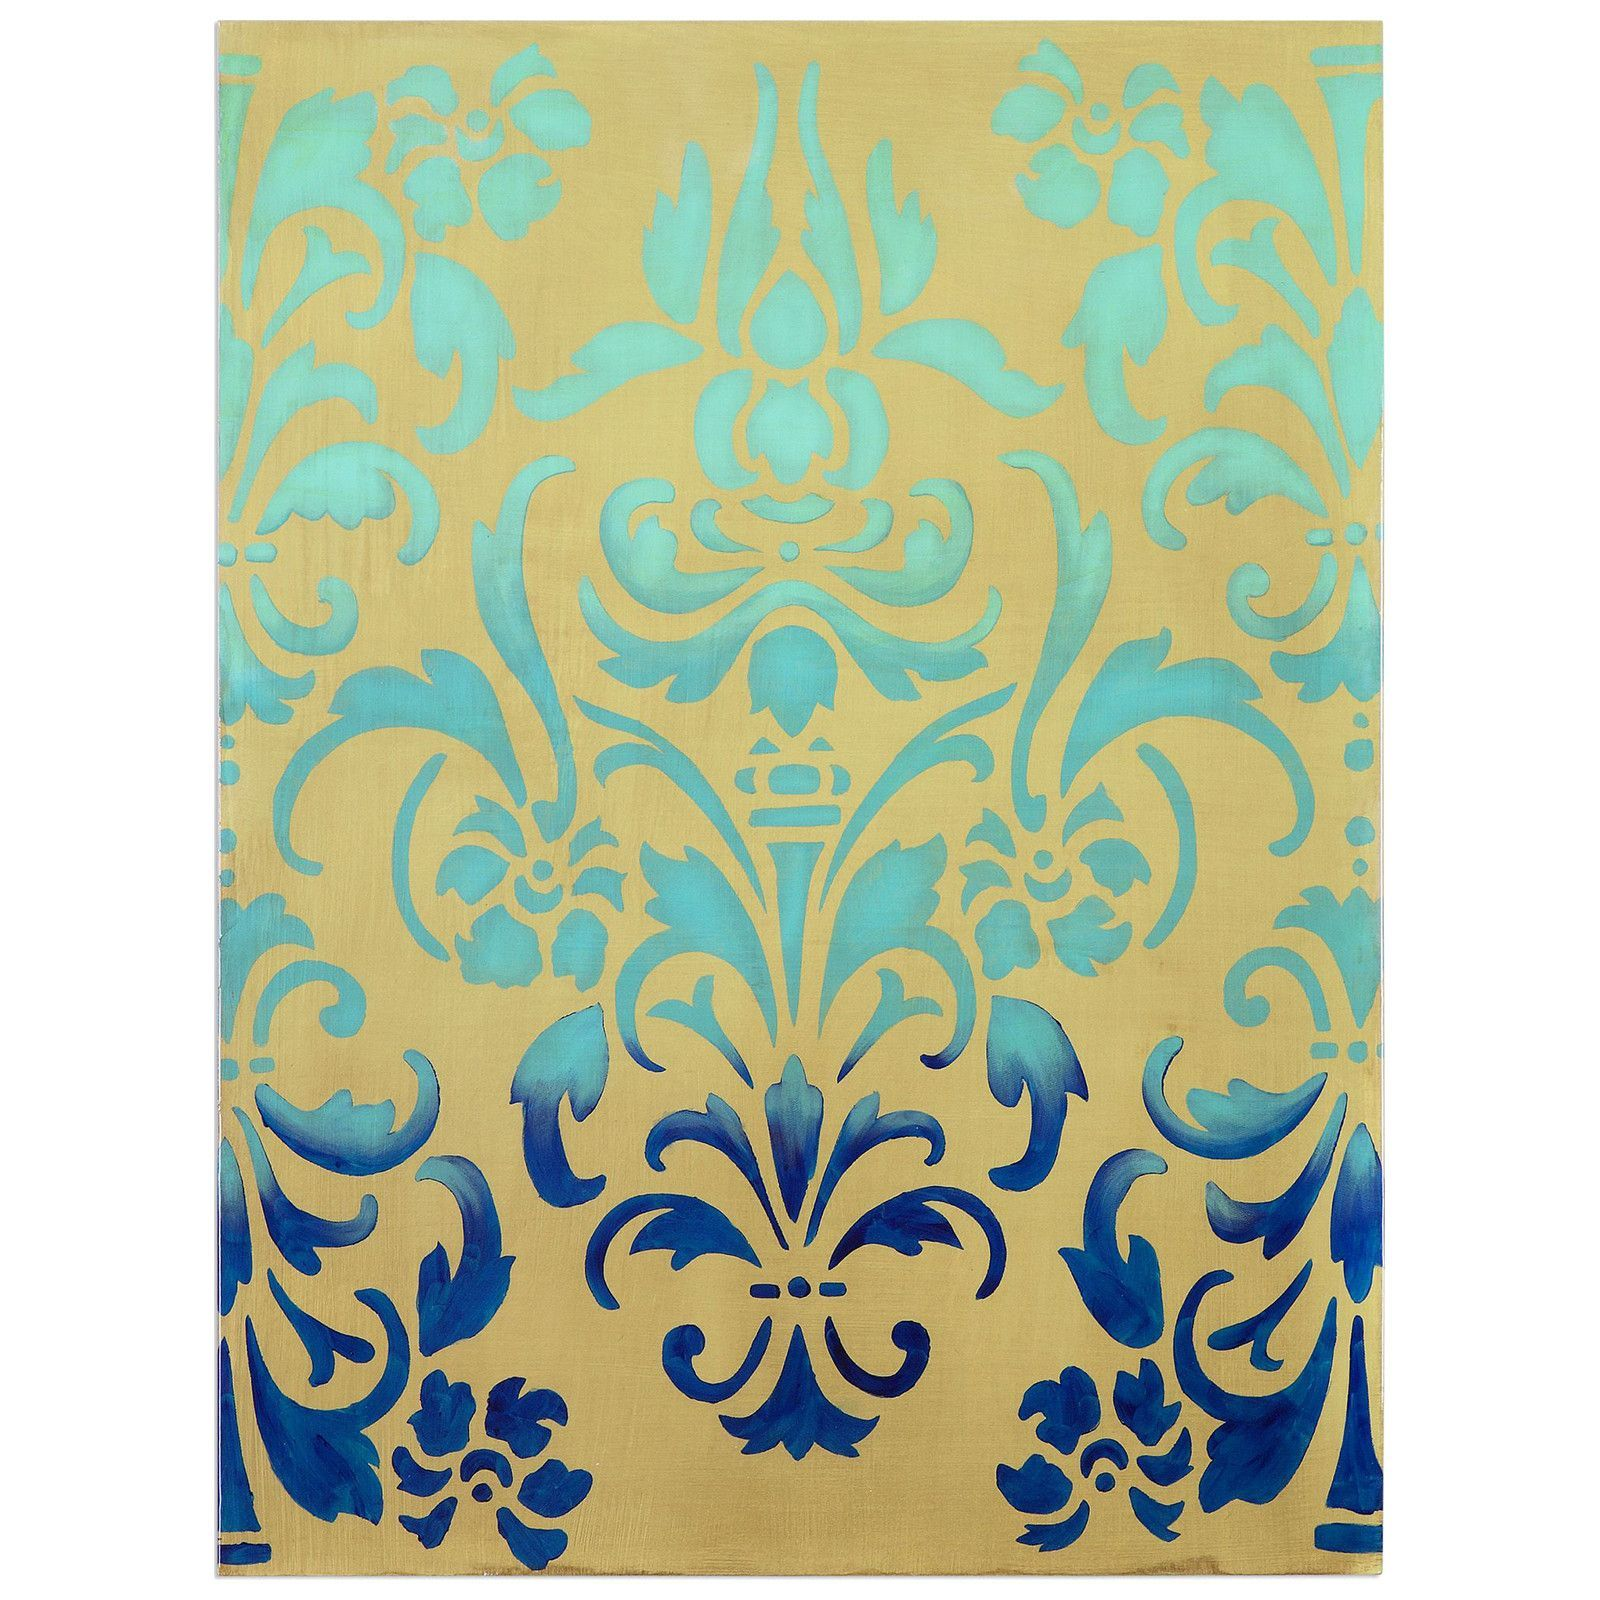 Blue Ombre Stencil Art | Products | Pinterest | Blue ombre and Products